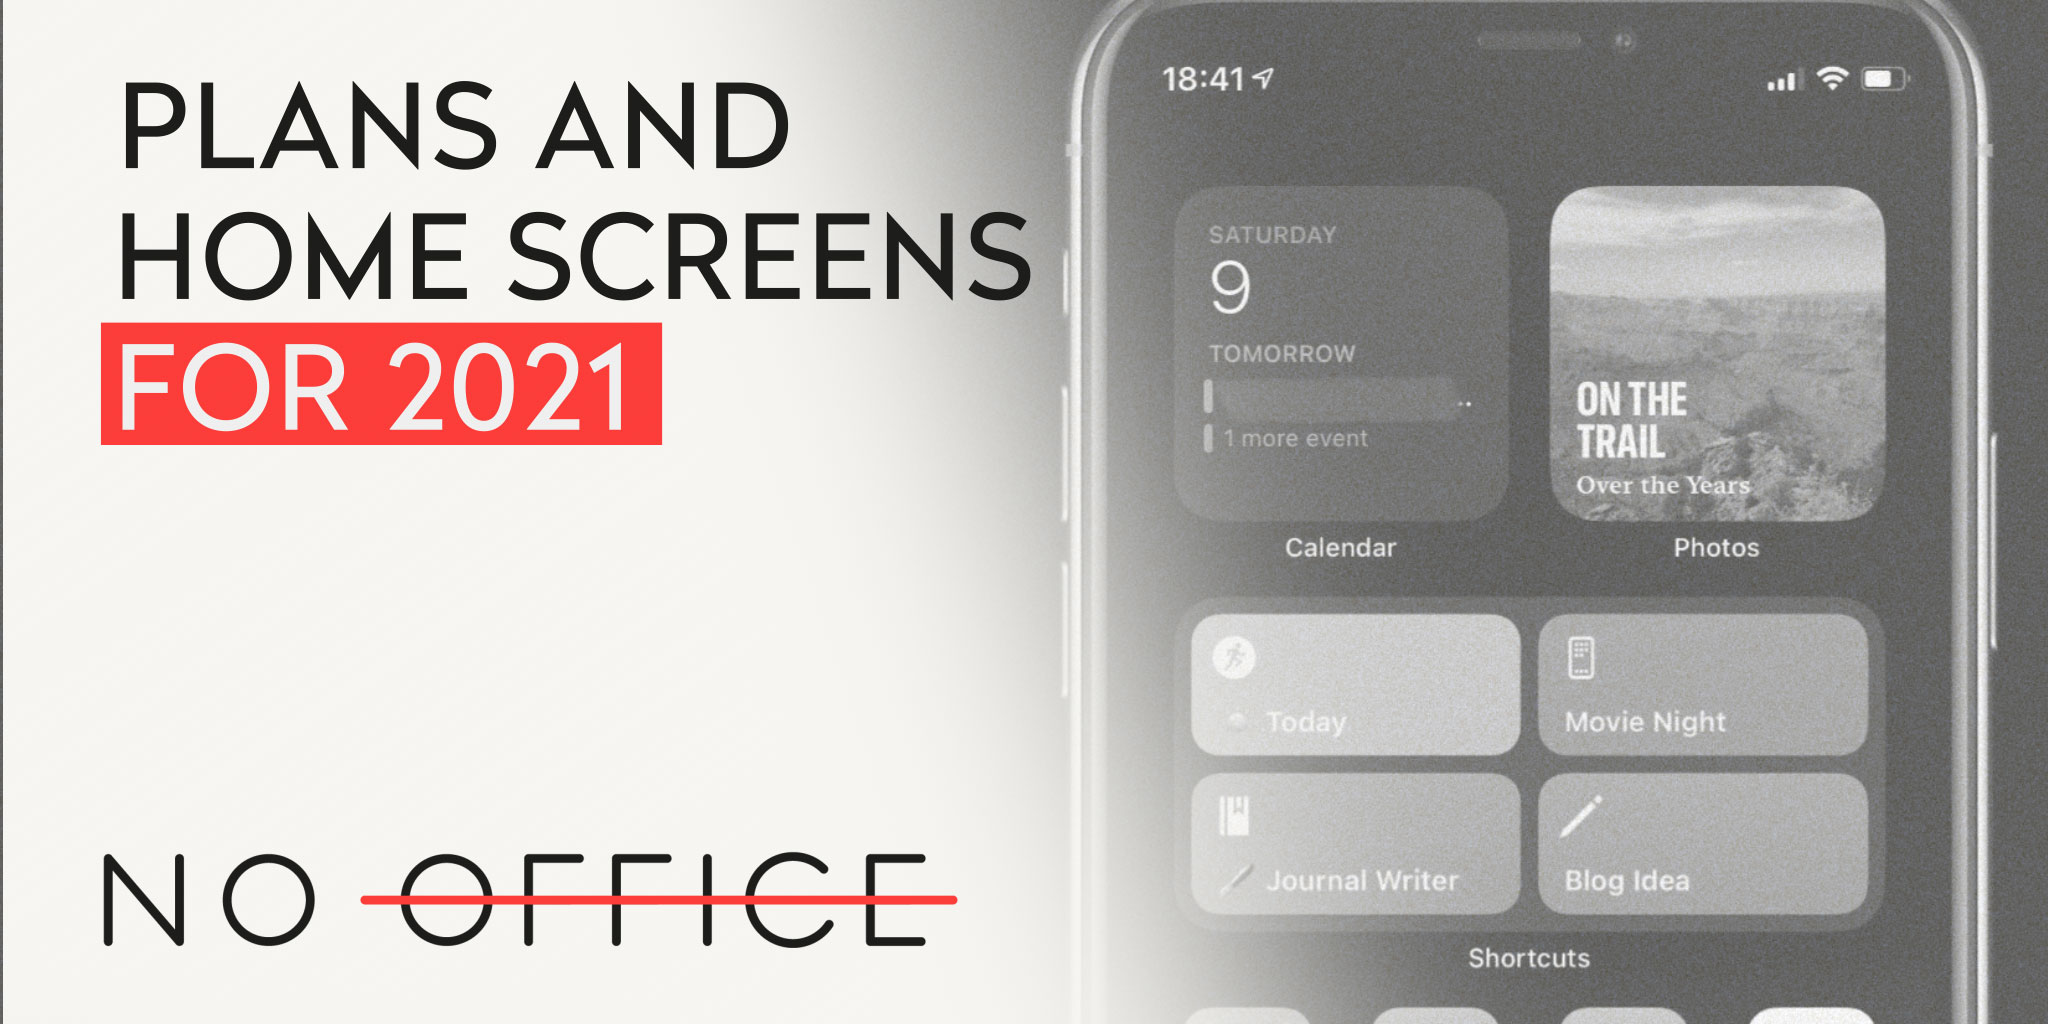 Direction and Home Screens for 2021 - The No Office Podcast - remote work and dispersed team management